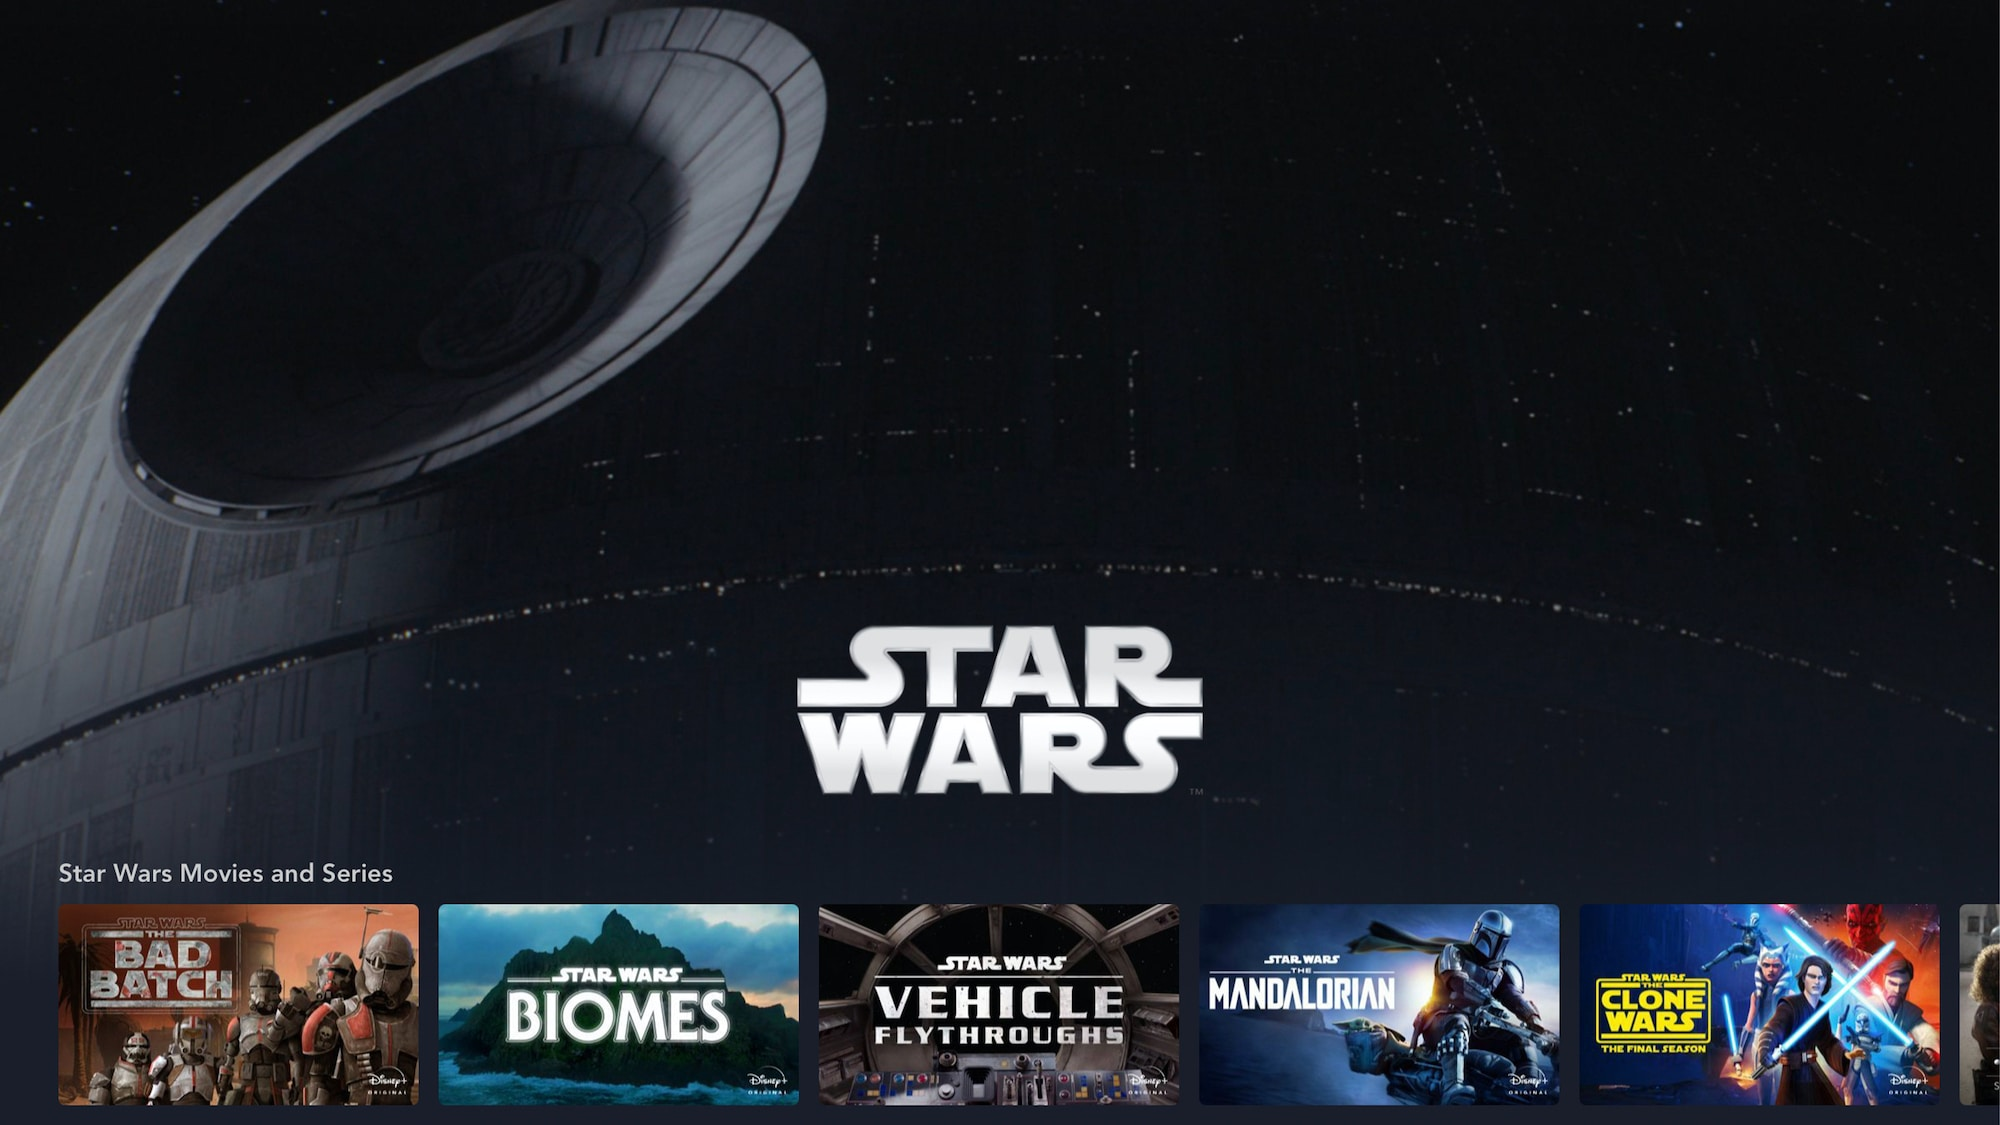 Star Wars Brand Landing Page on Tablet